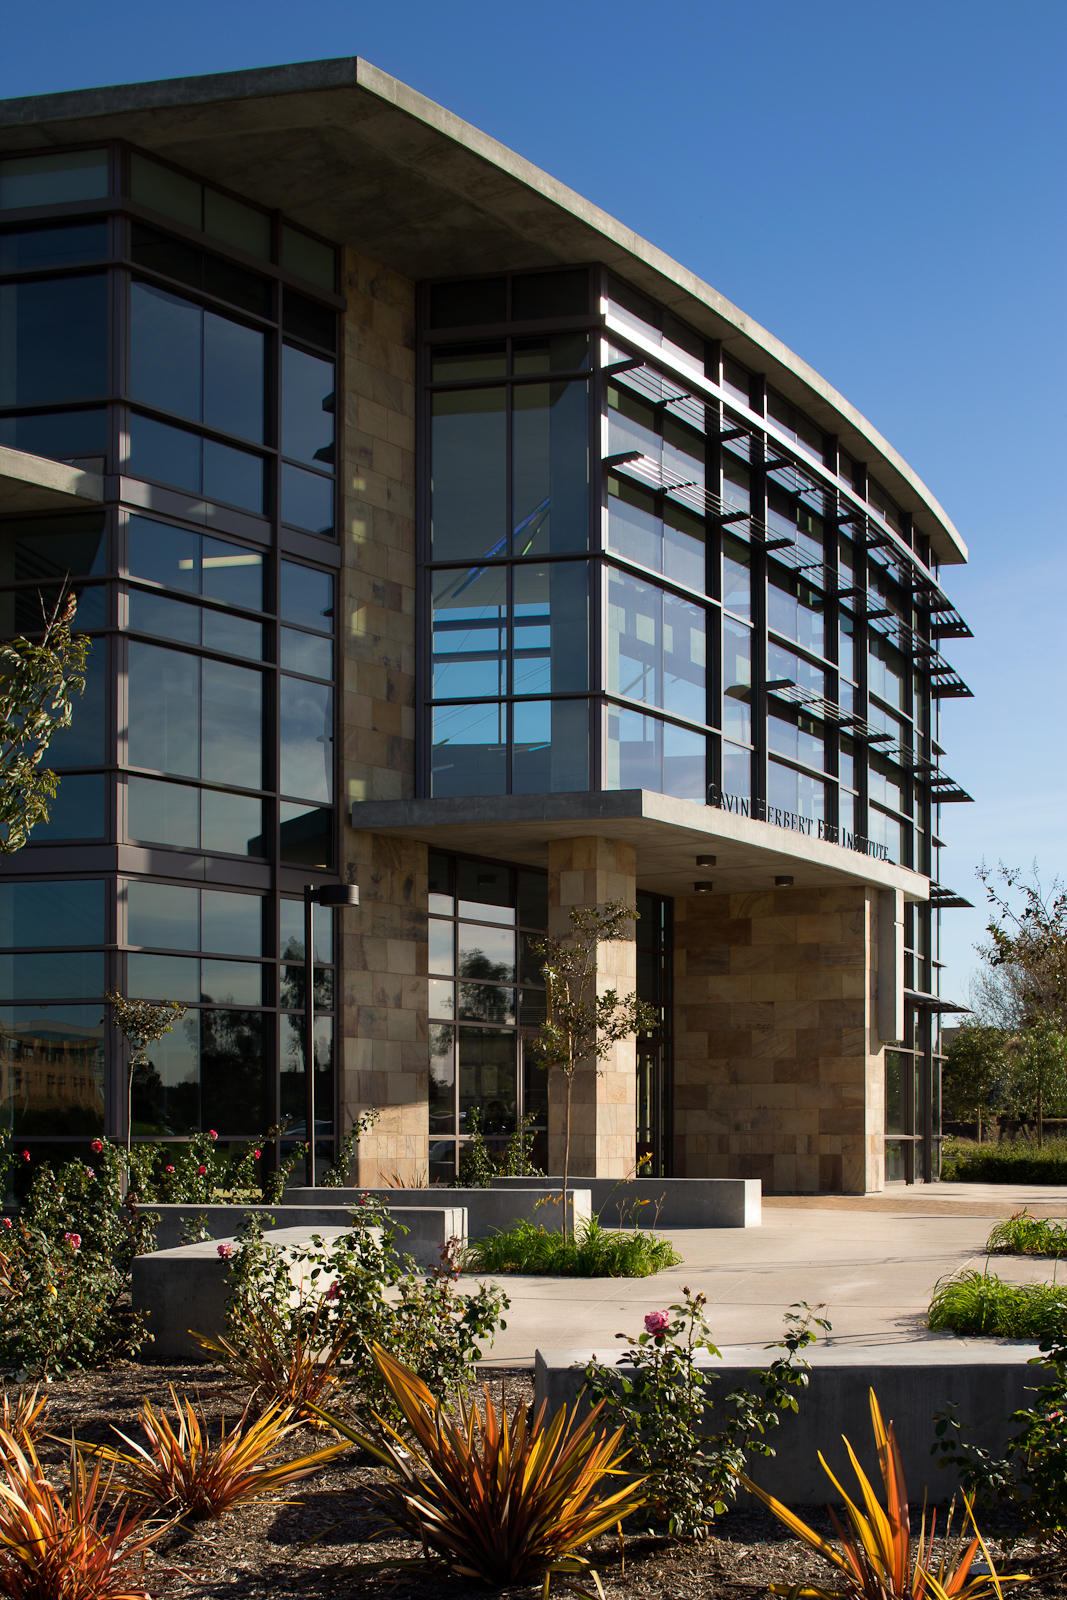 Gavin Herbert Eye Institute - Ambulatory Surgery and Clinical Services